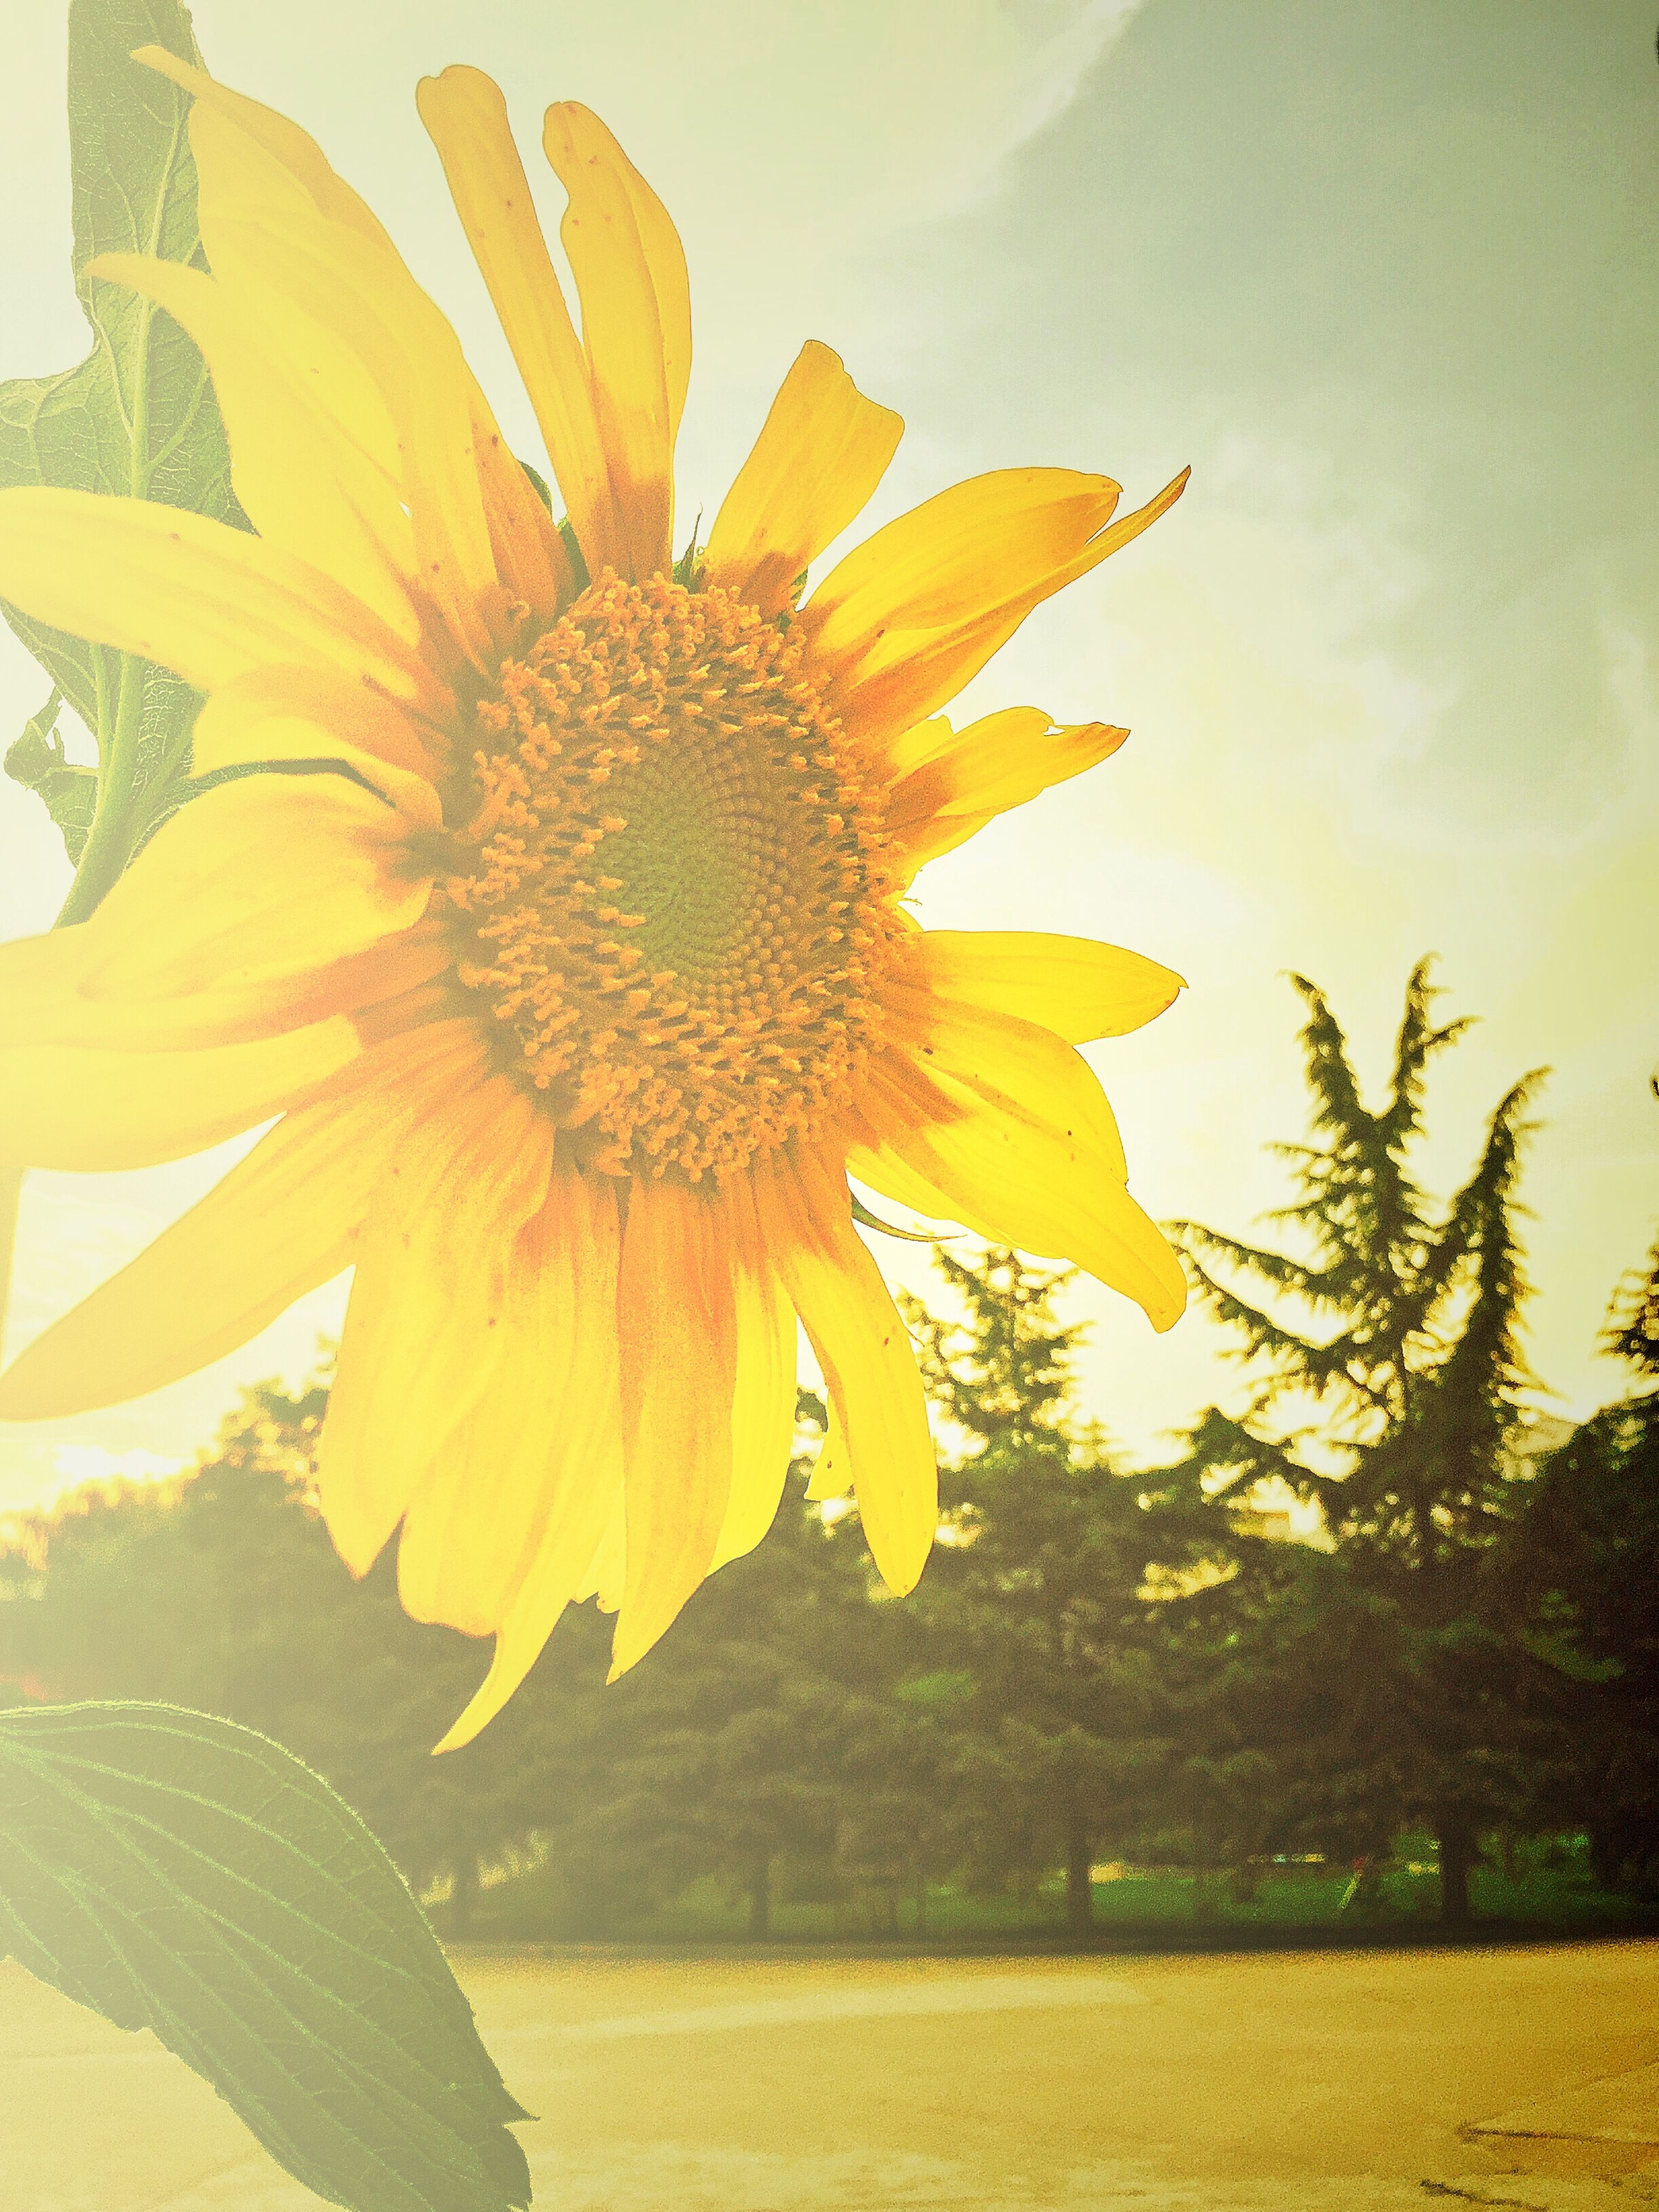 flower, petal, yellow, freshness, flower head, fragility, sunflower, growth, pollen, beauty in nature, blooming, plant, single flower, nature, close-up, in bloom, leaf, focus on foreground, sky, outdoors